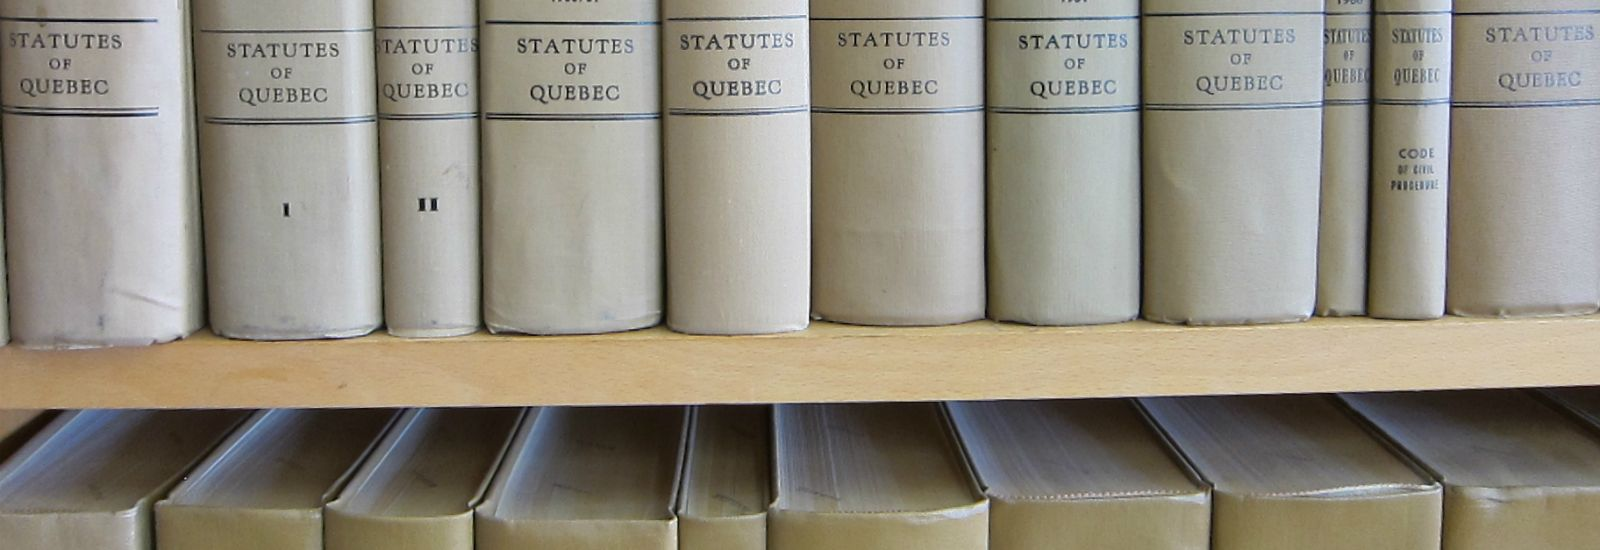 Copies of the 'Statutes of Quebec' on a shelf